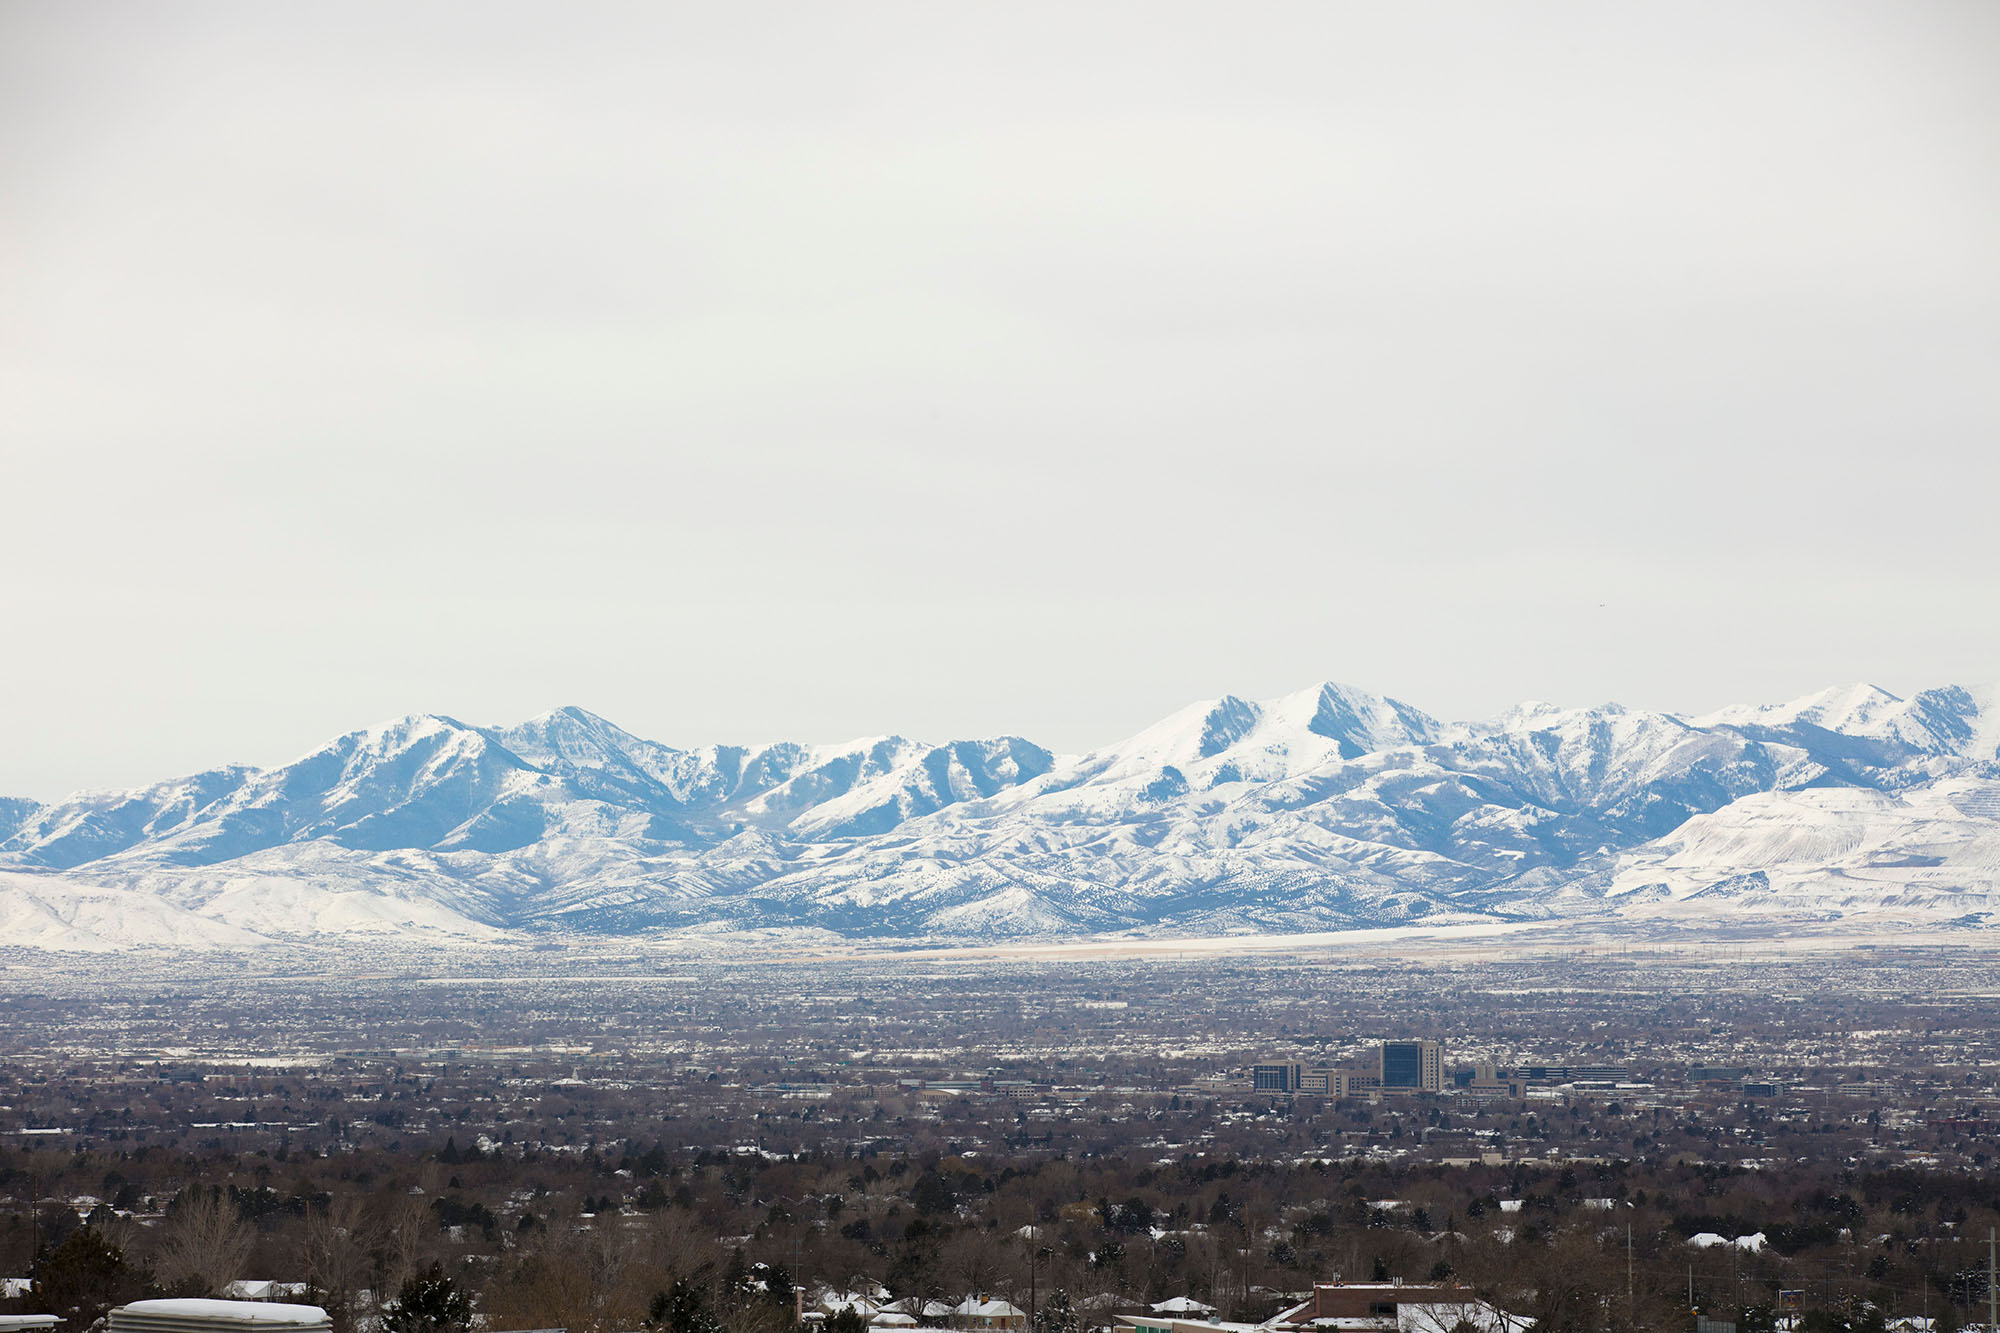 Mountains in the distance